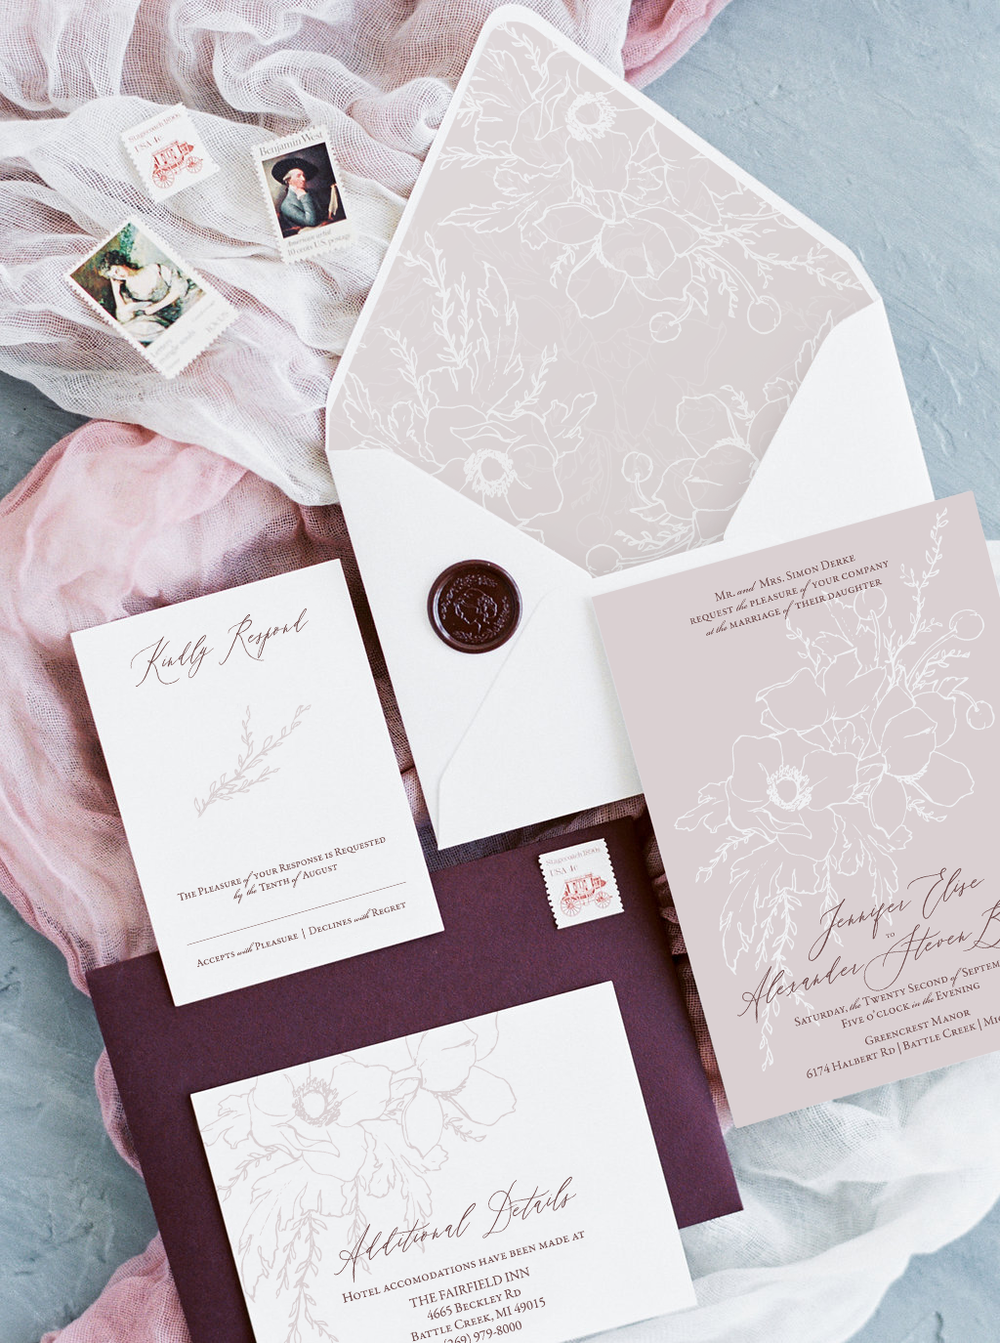 How to start a custom stationery business. 5 key steps for getting started with your new business! Featuring sketchy floral wedding invitations - fine art inspired wedding invitations with a clean and modern layout. #fineartwedding #weddingstationerydesigner #stationerydesigner #blusheddesign